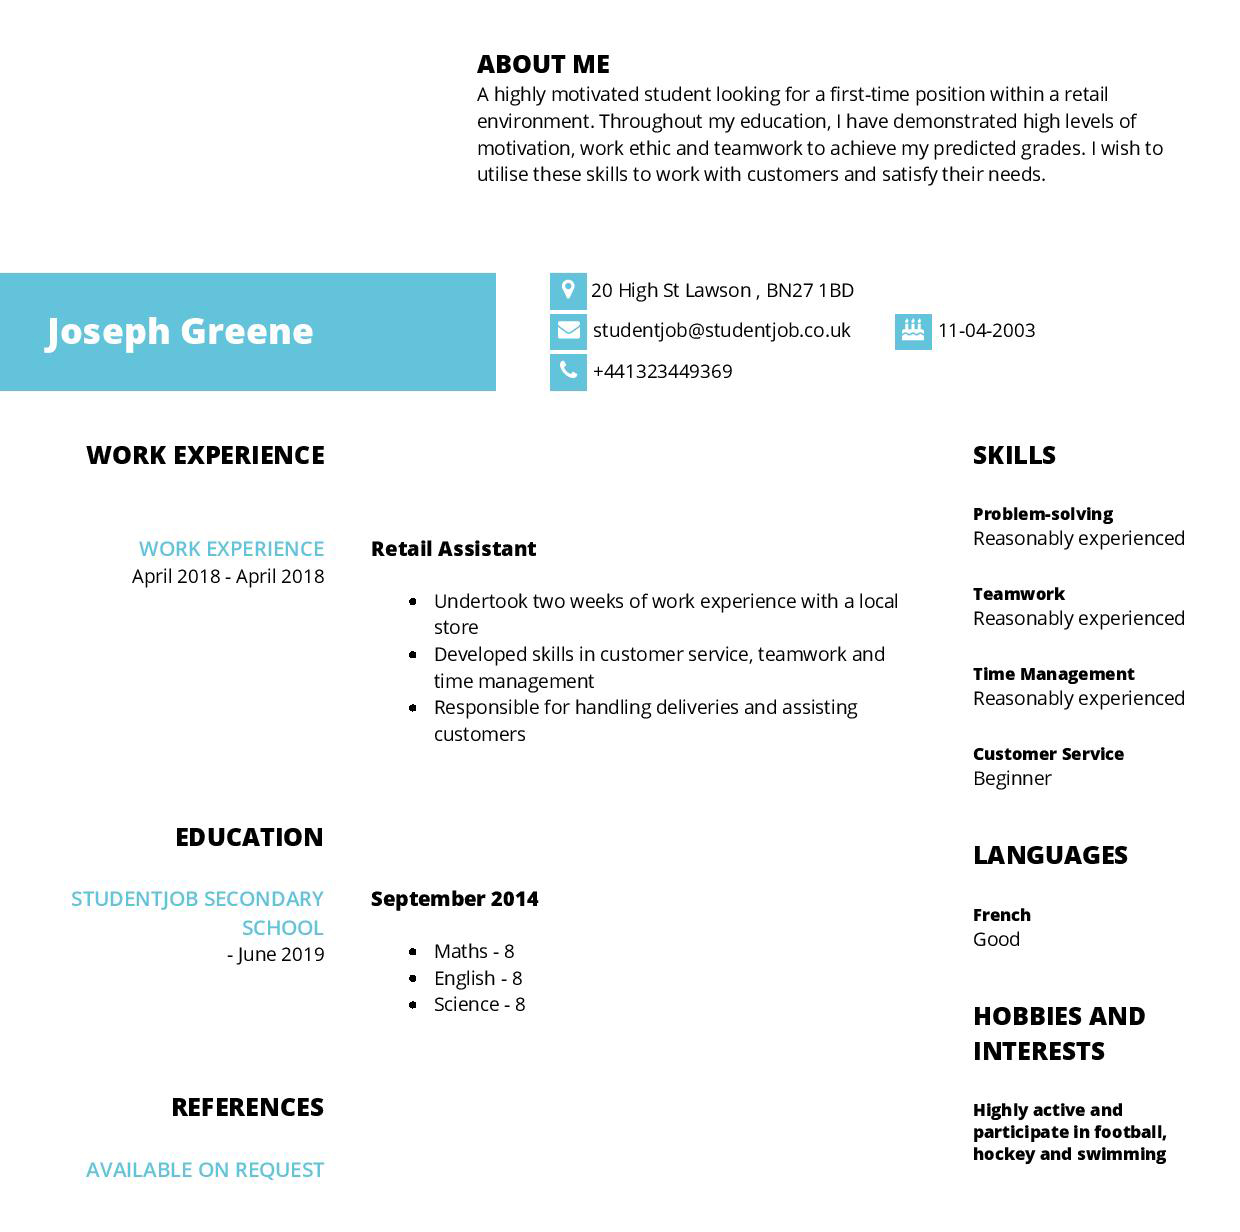 CV Examples and CV Templates For Free | StudentJob UK